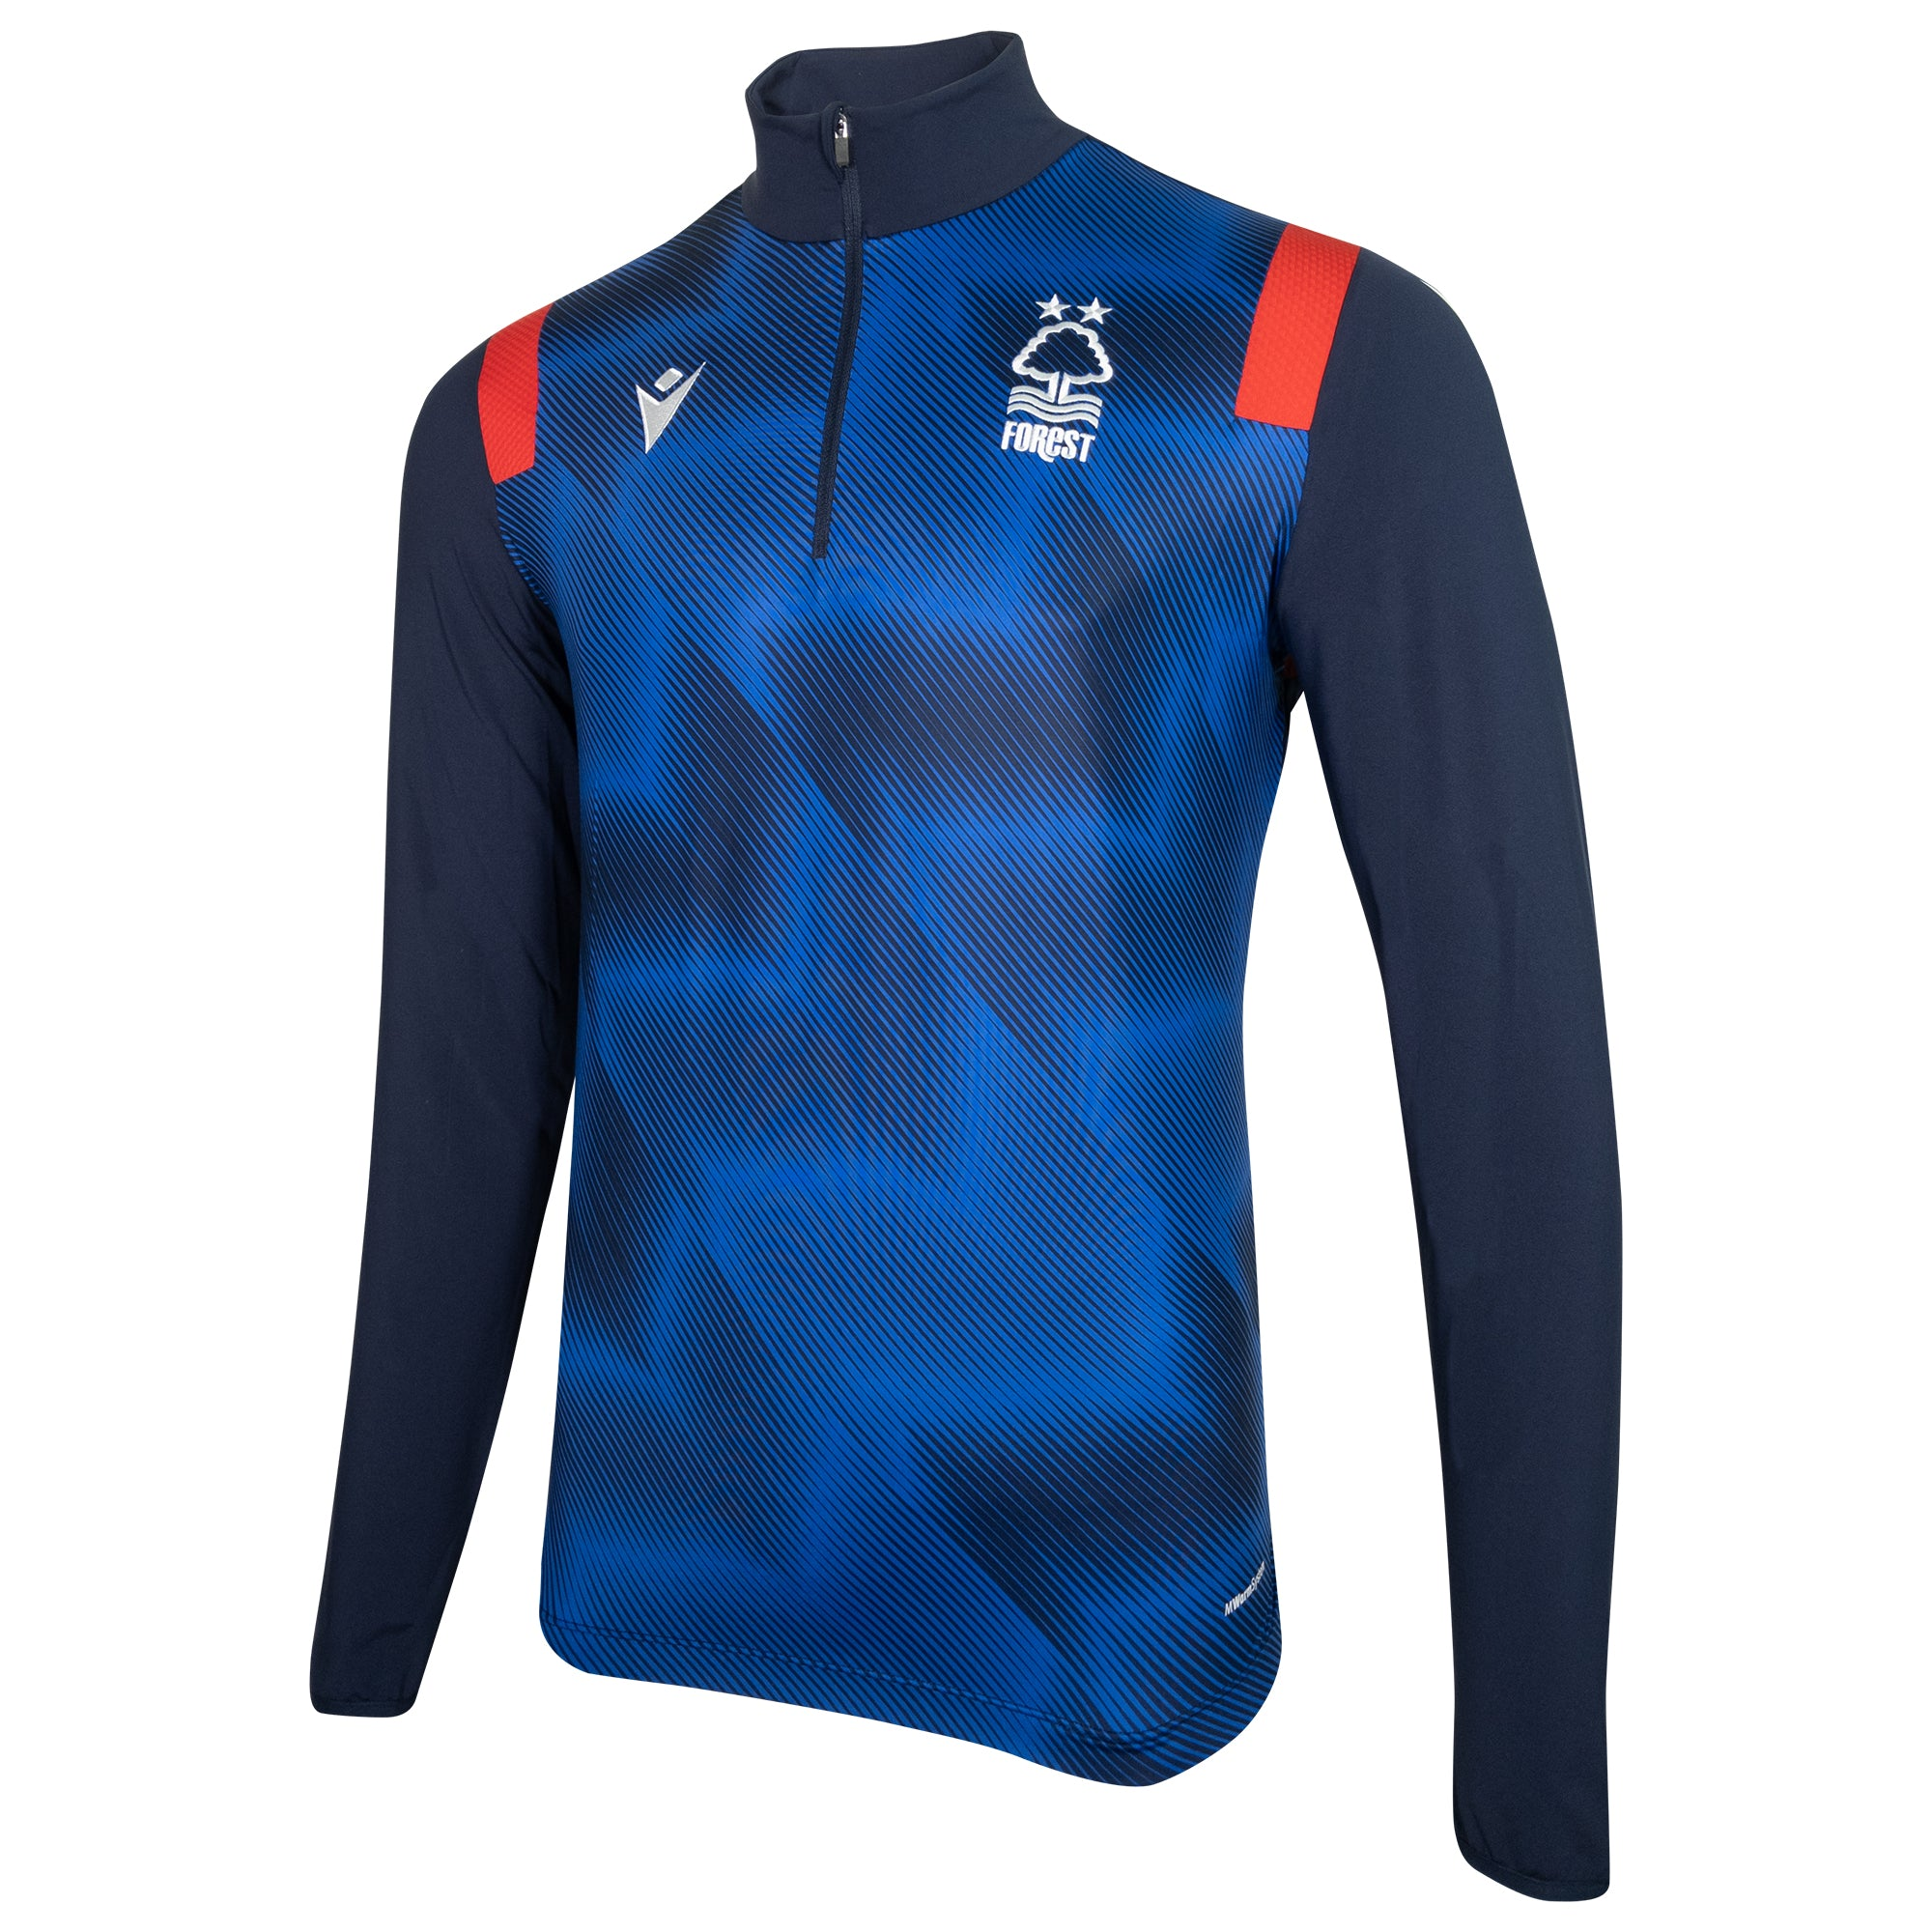 NFFC Mens Staff Training 1/4 Zip Top 2020/21